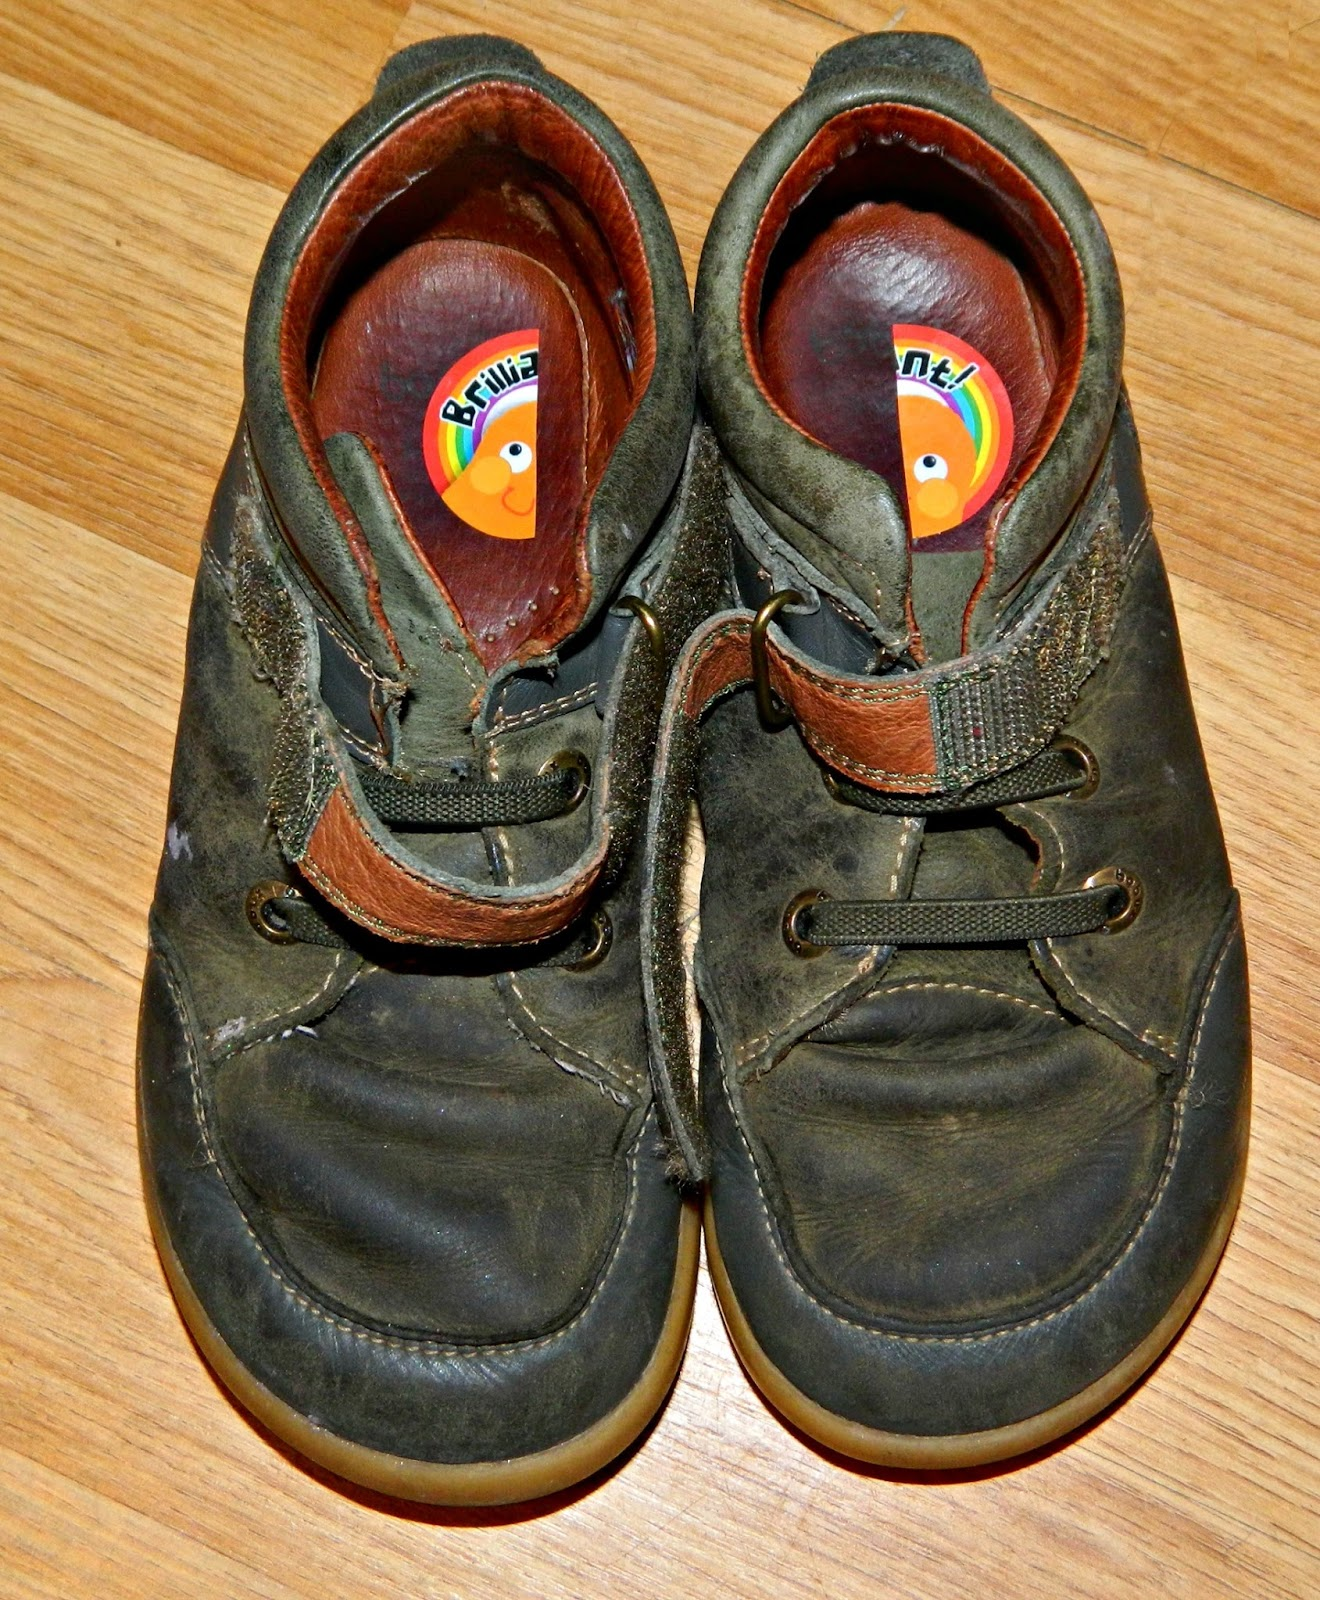 Half a sticker in each shoe to help learn left from right